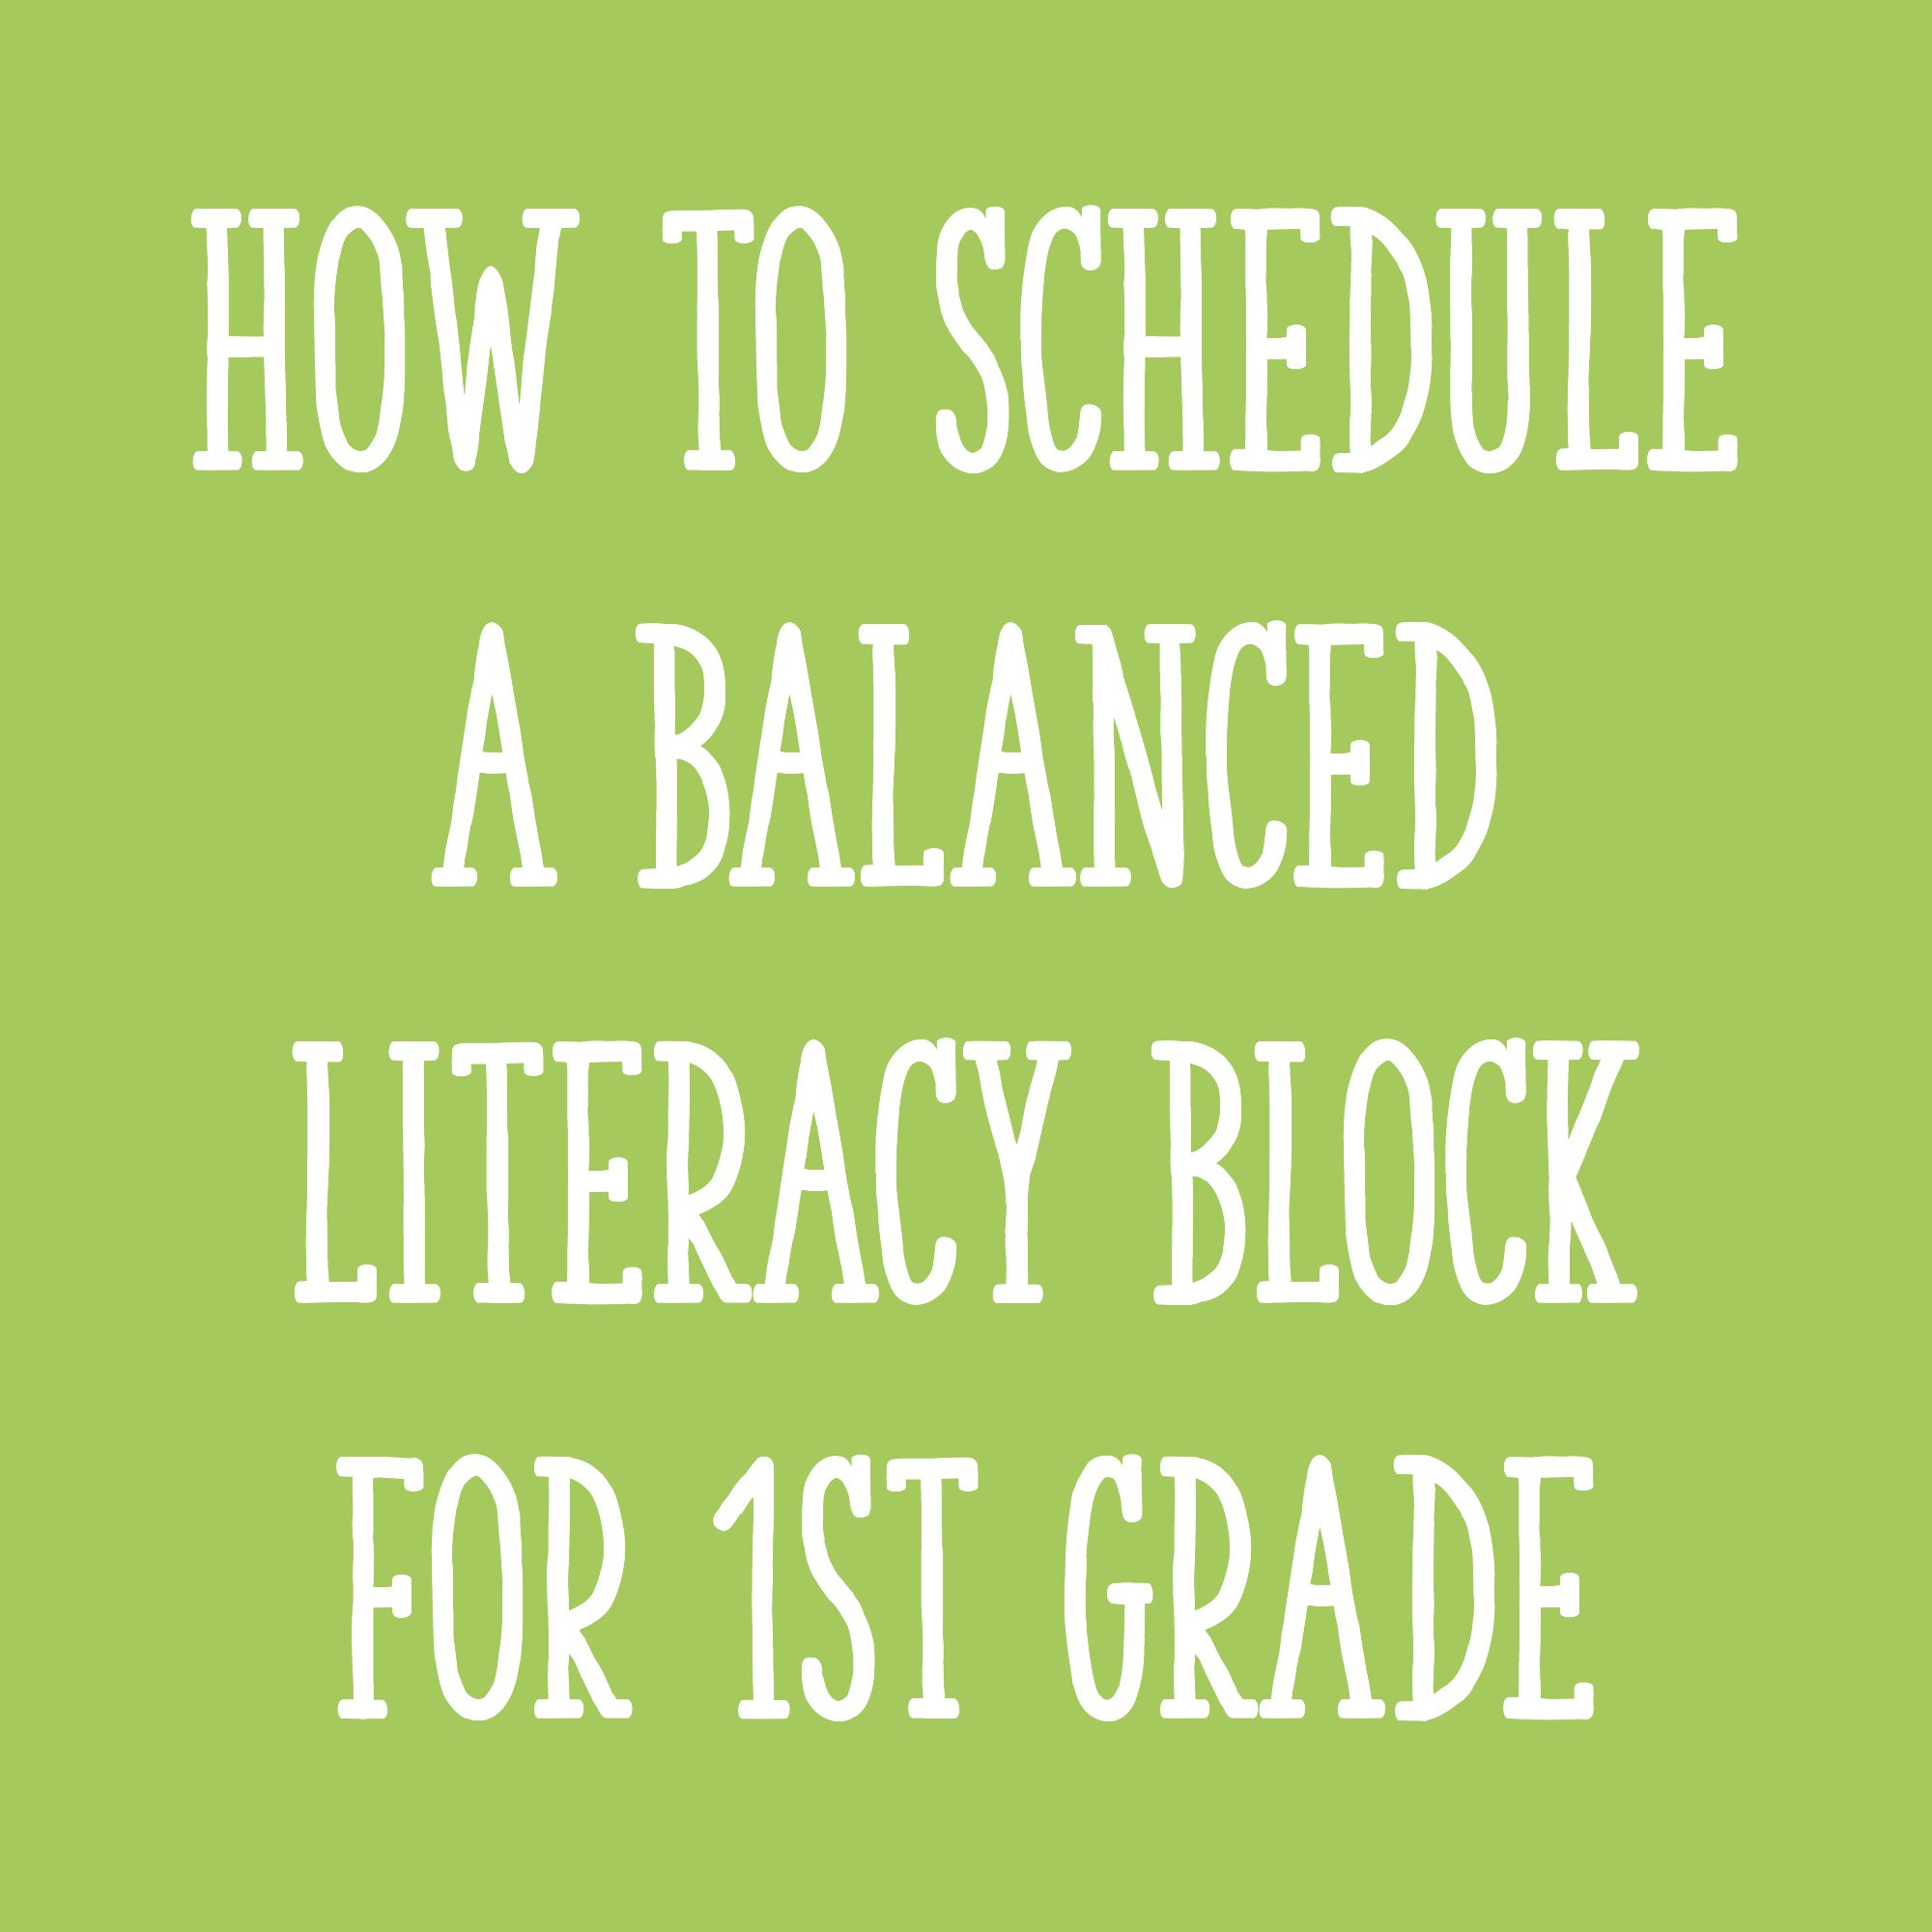 hight resolution of Fitting It All In: How to Schedule Your Literacy Block for First Grade -  Learning at the Primary Pond